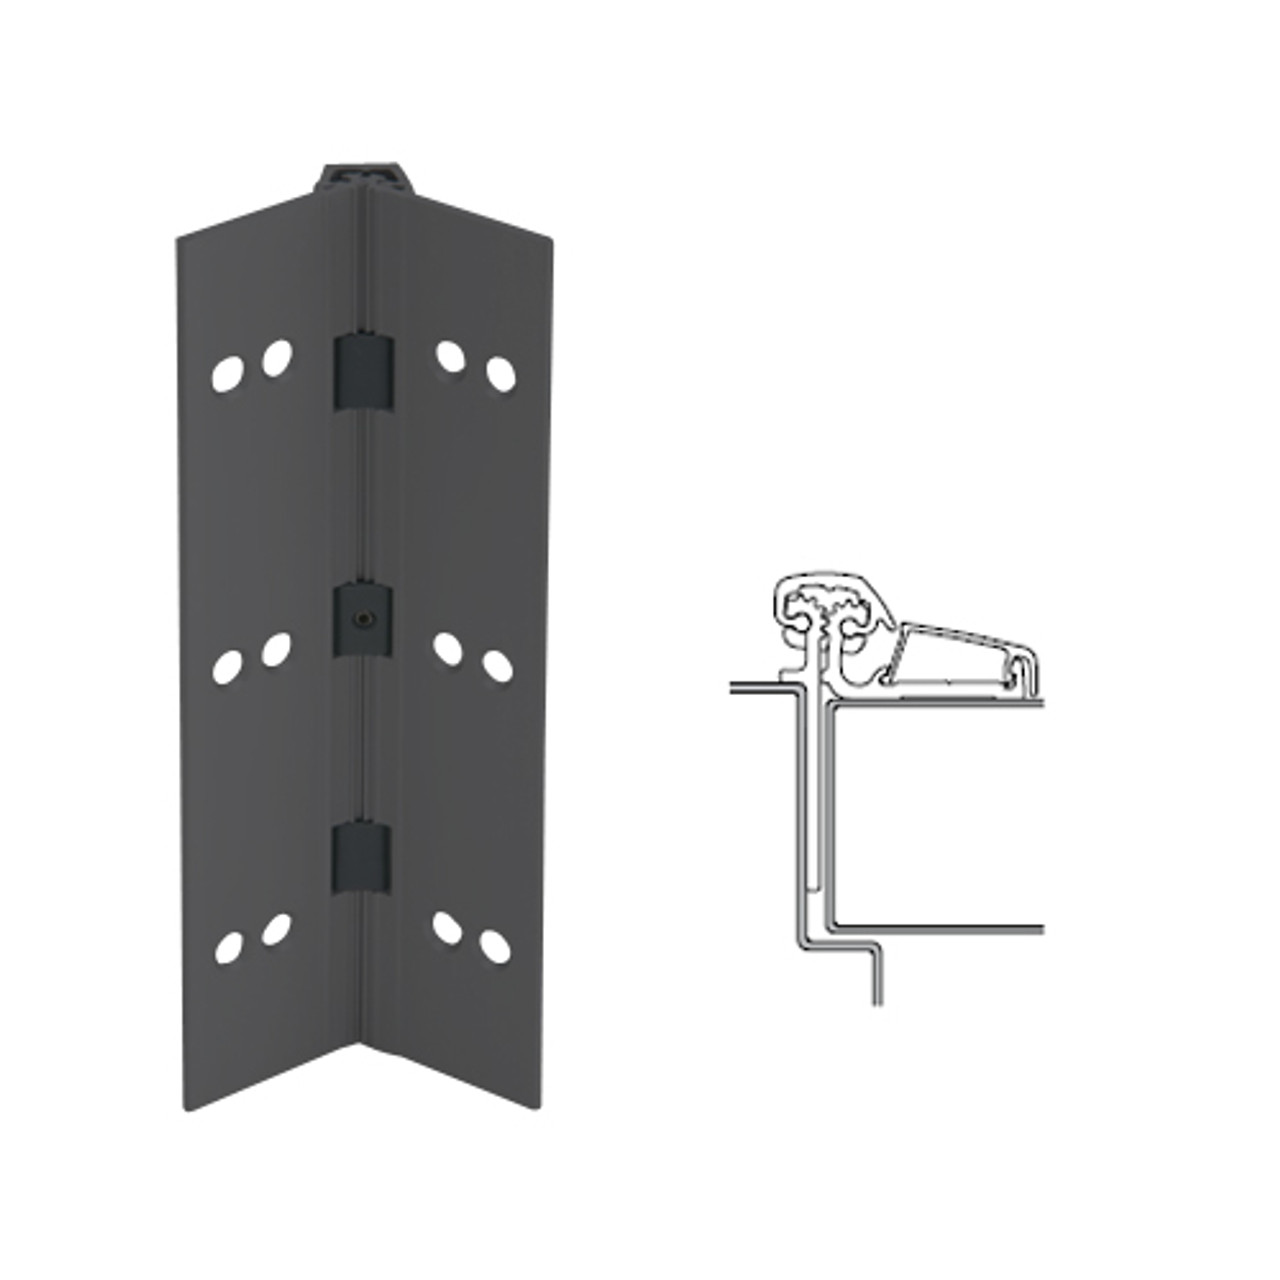 053XY-315AN-95-WD IVES Adjustable Half Surface Continuous Geared Hinges with Wood Screws in Anodized Black